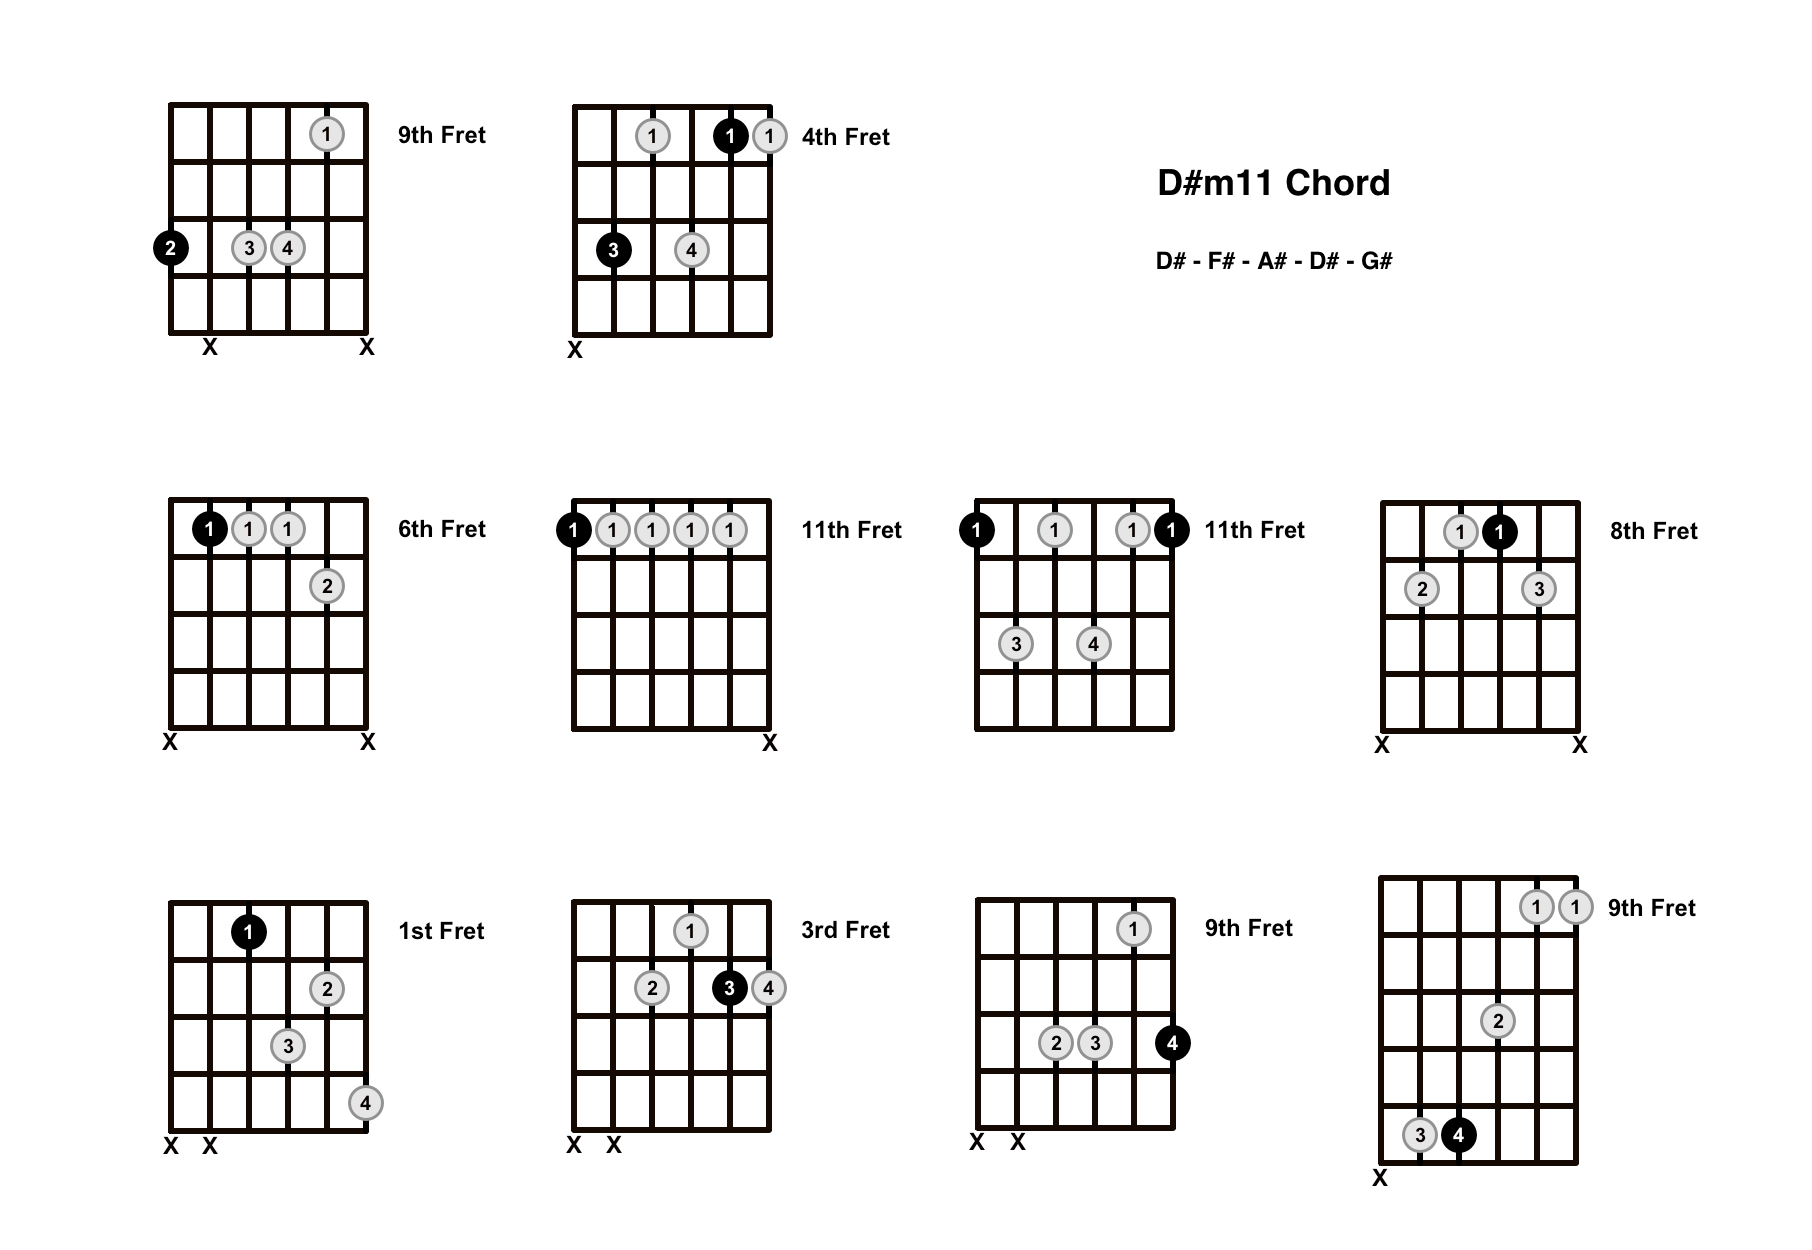 D#m11 Chord On The Guitar (D Sharp minor 11) – Diagrams, Finger Positions and Theory